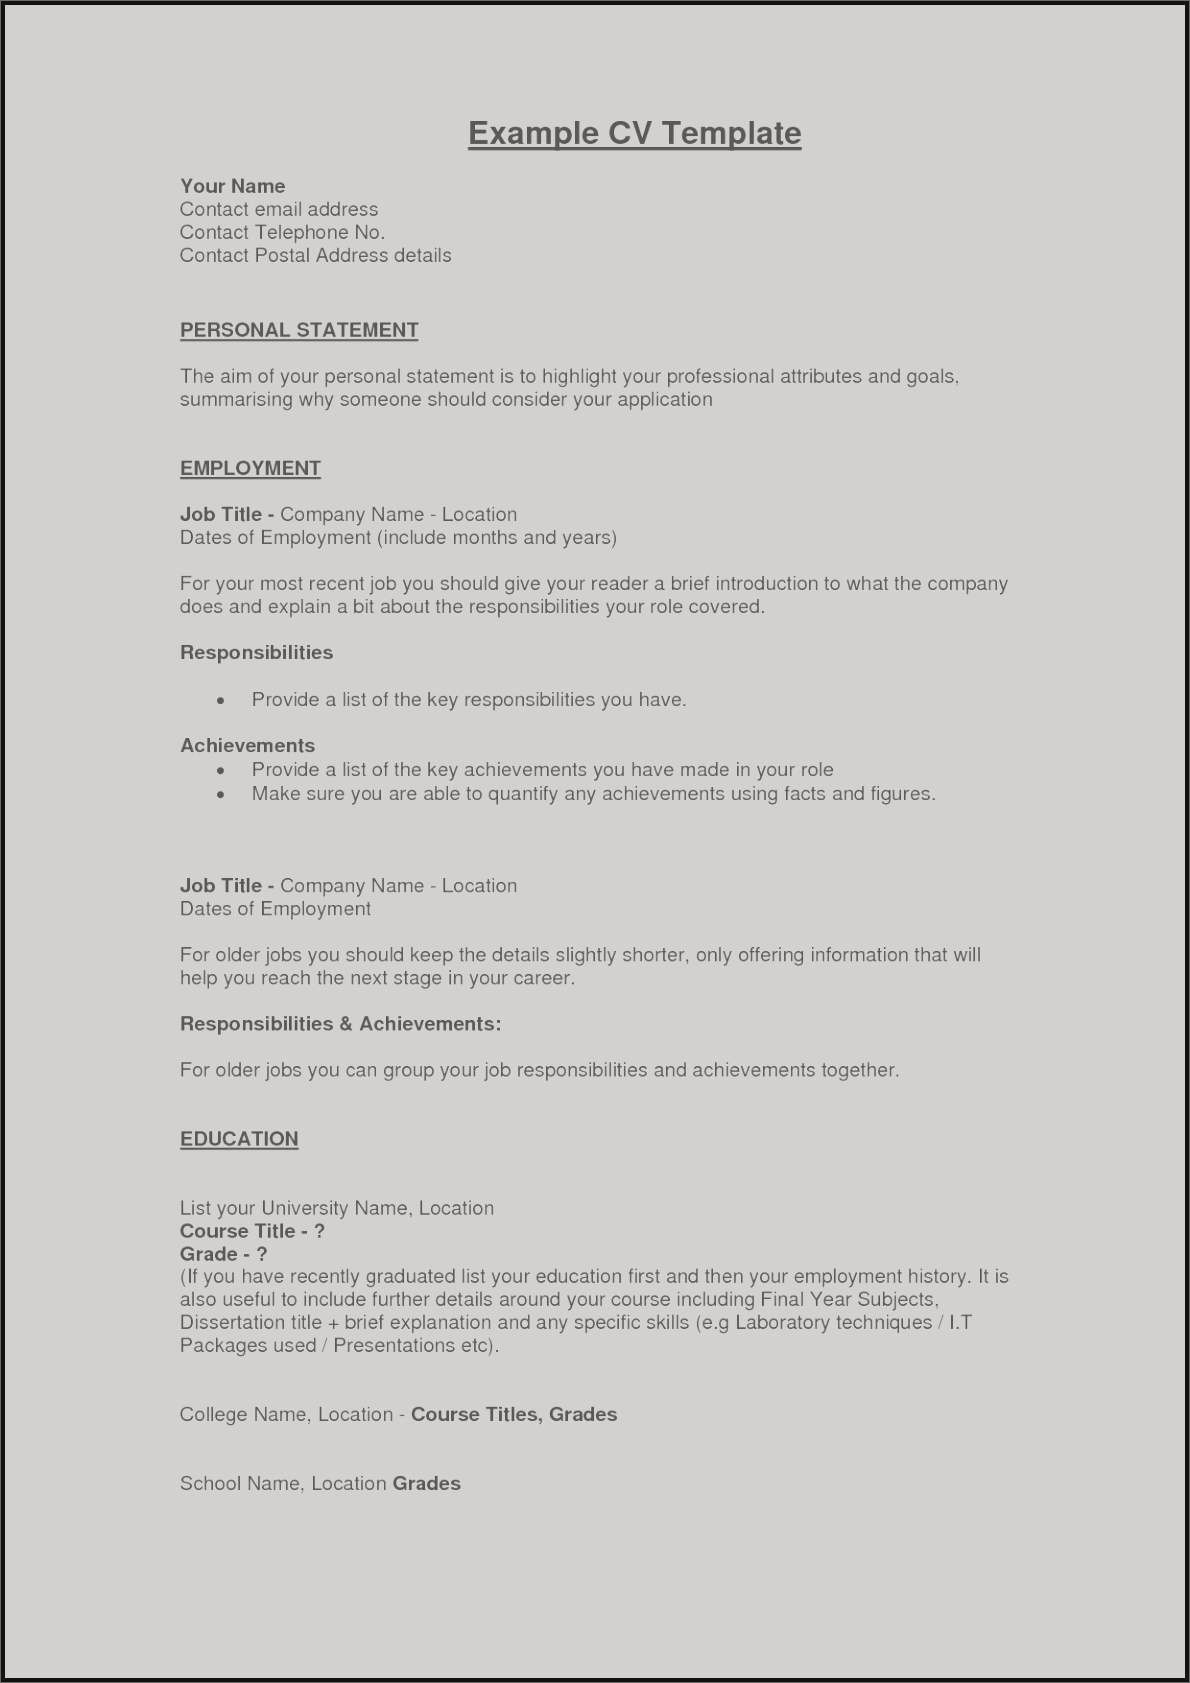 Business Analyst Resume Objective - Example Business Analyst Resume Best Example Perfect Resume Fresh